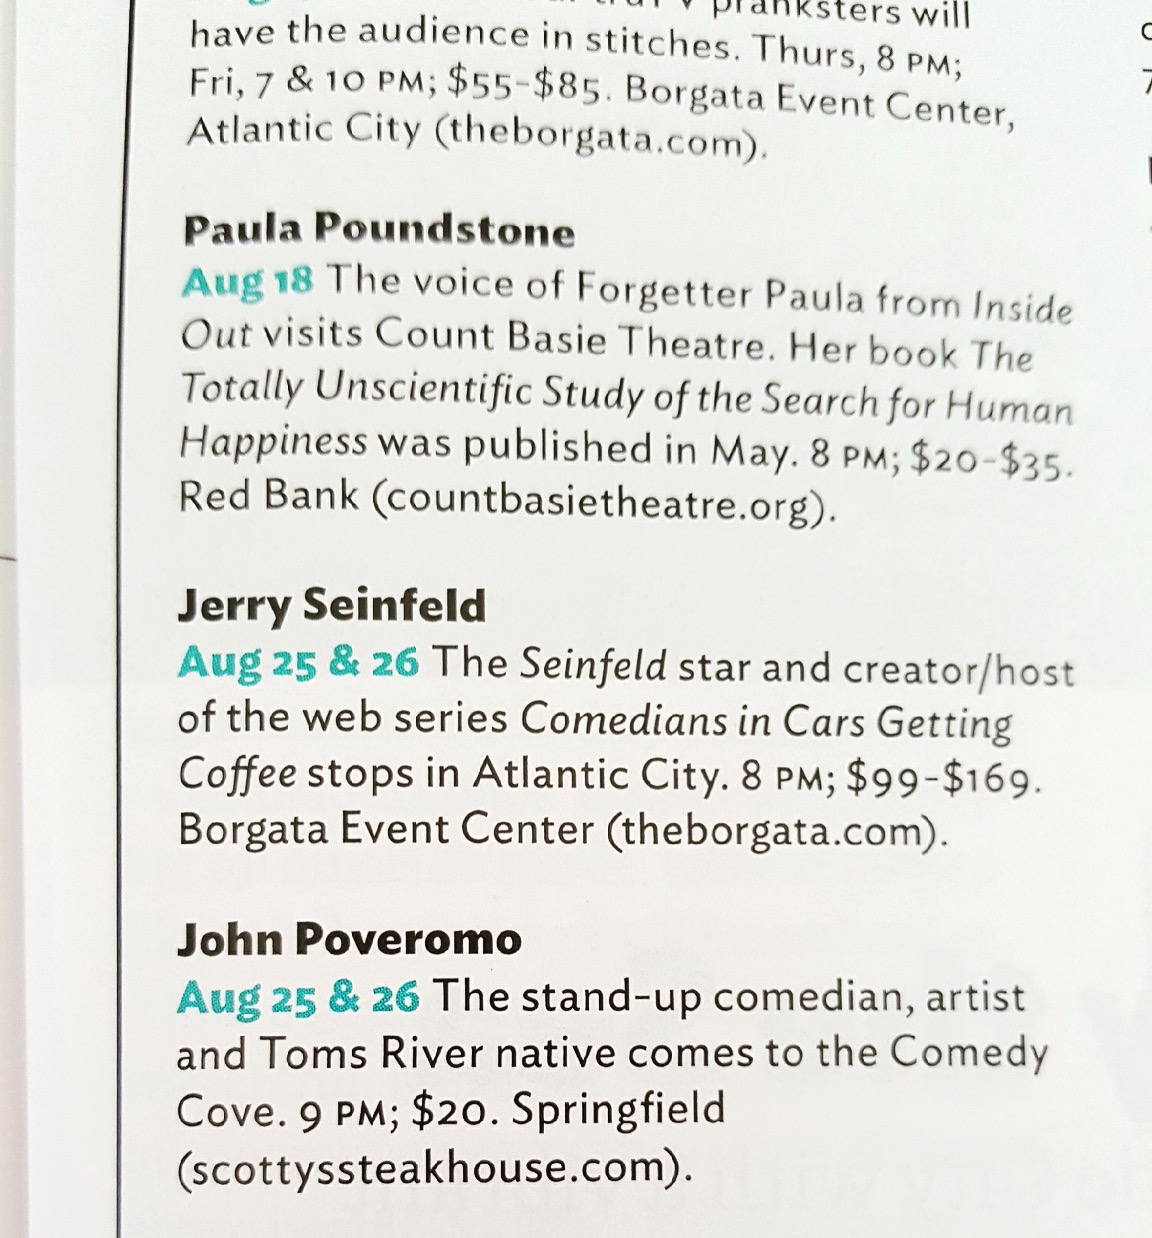 Copy of Blurb in NJ Monthly Magazine